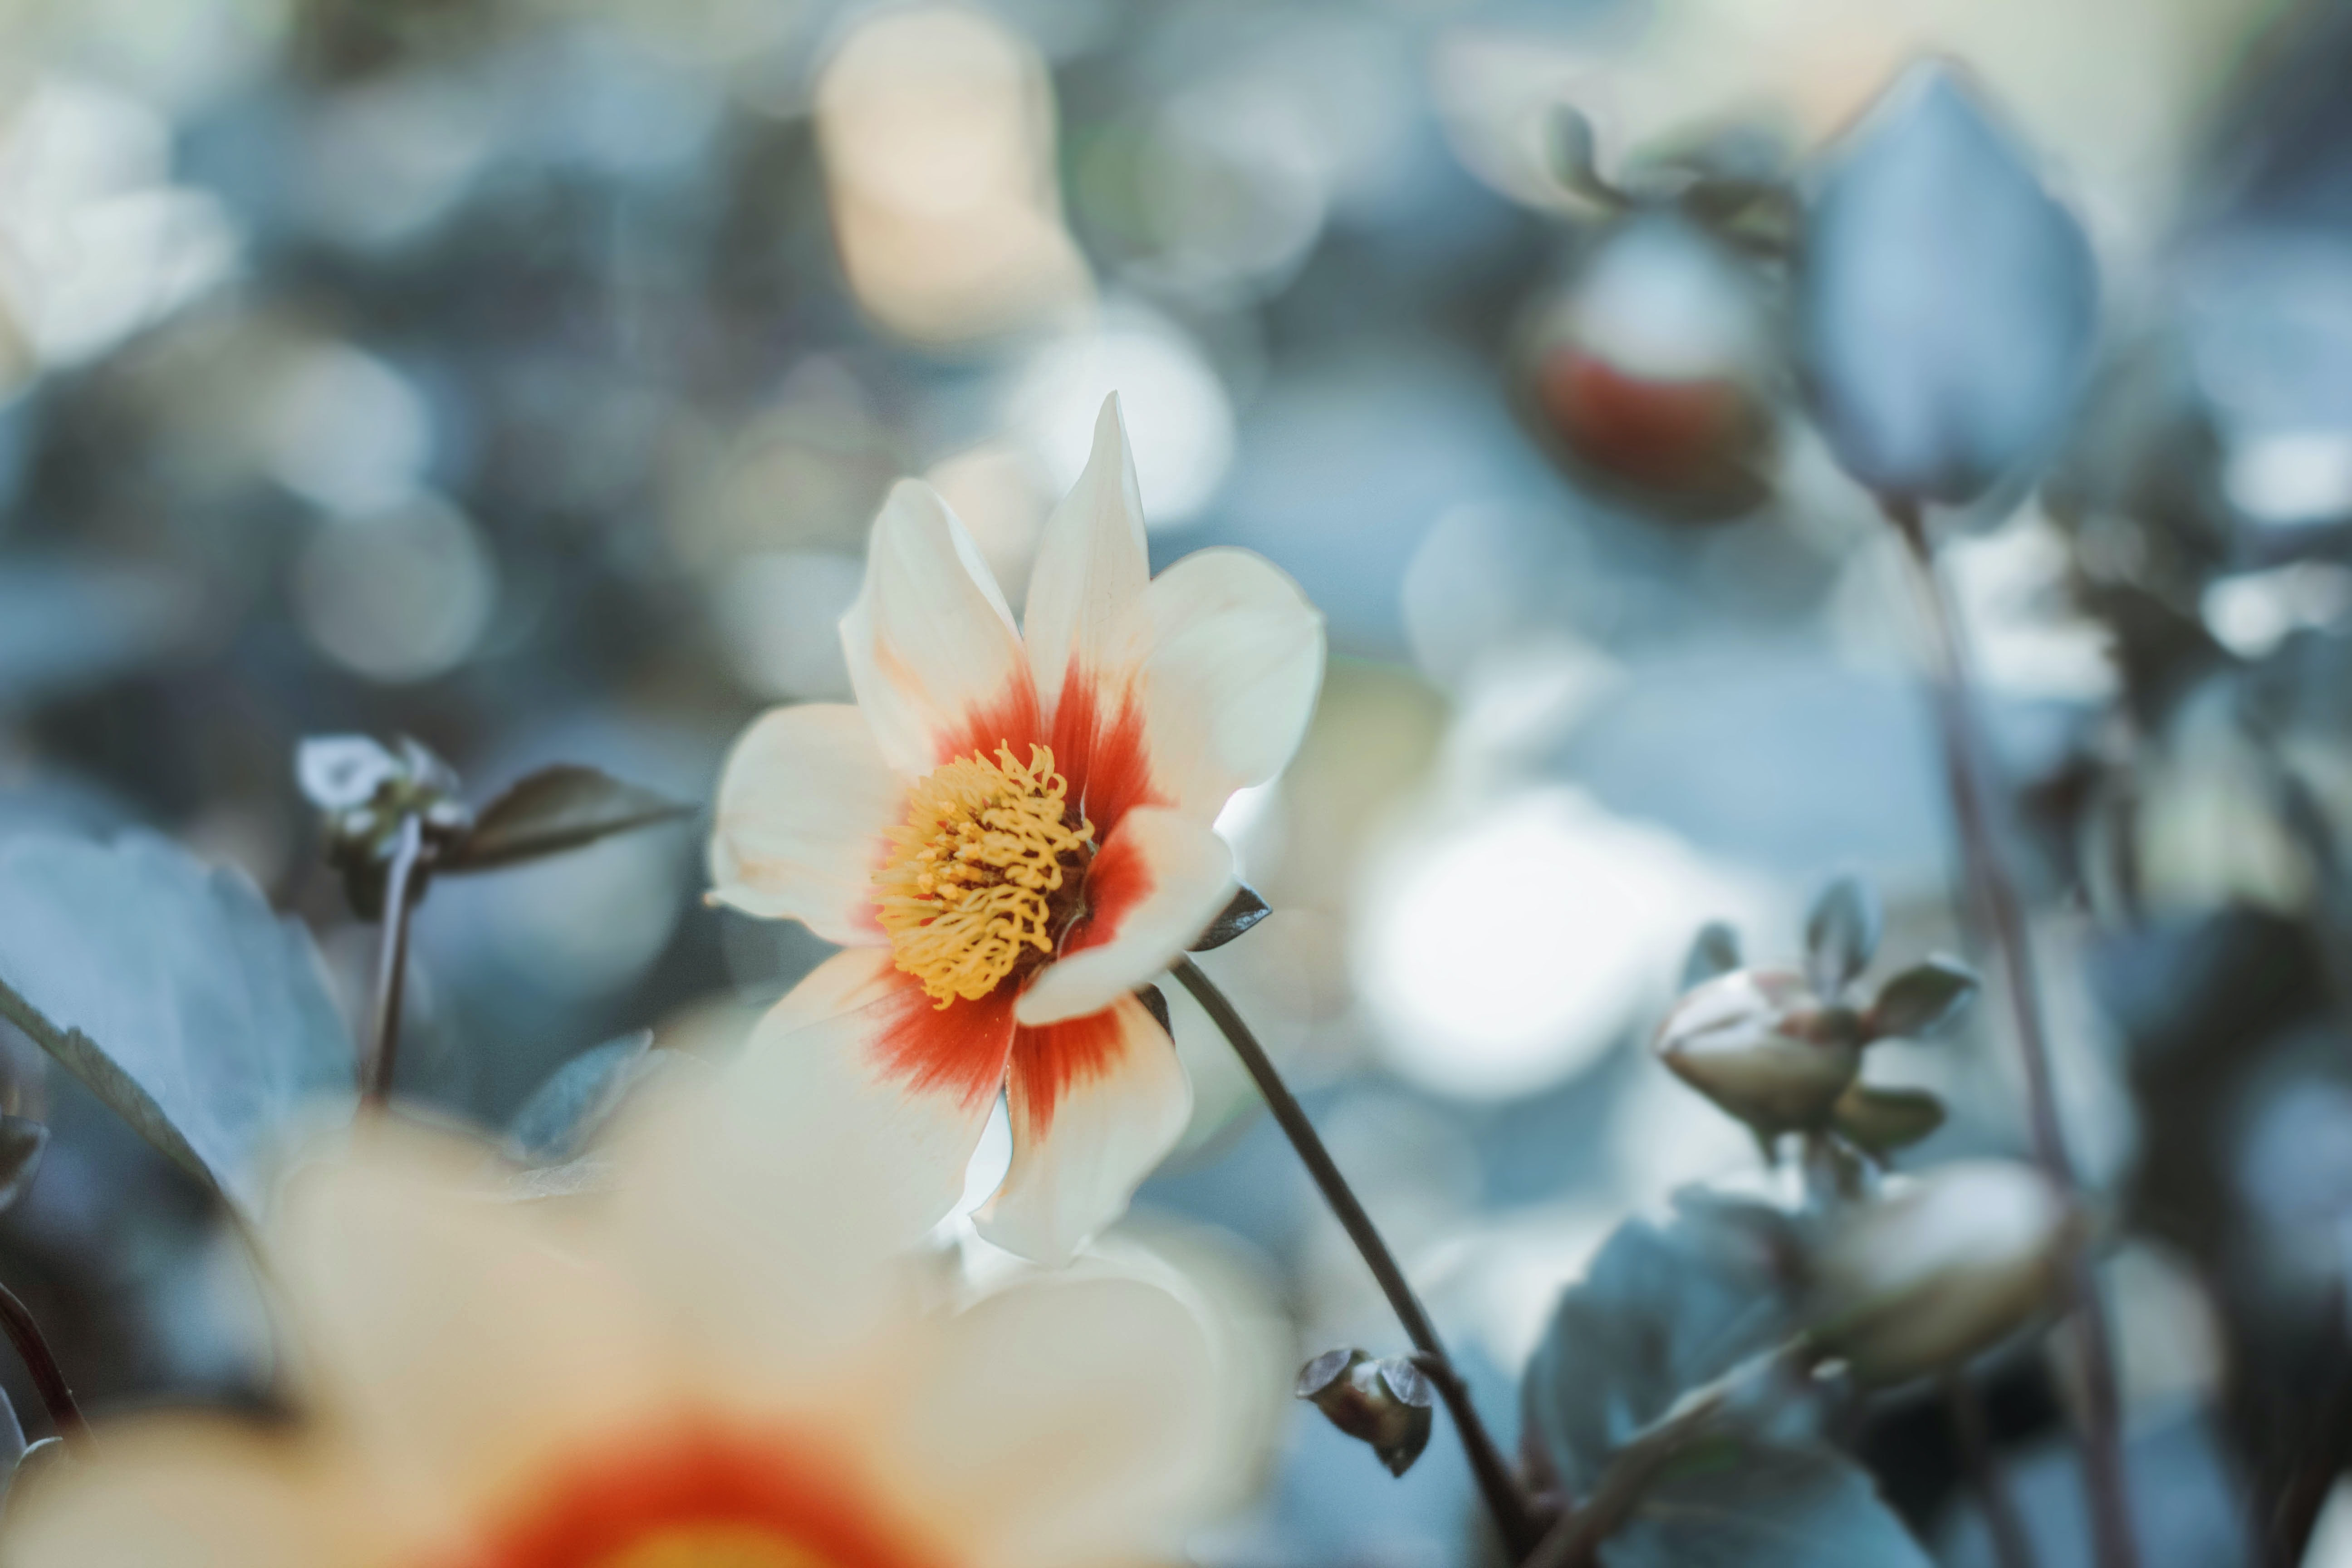 depth of field photo of white and red flower